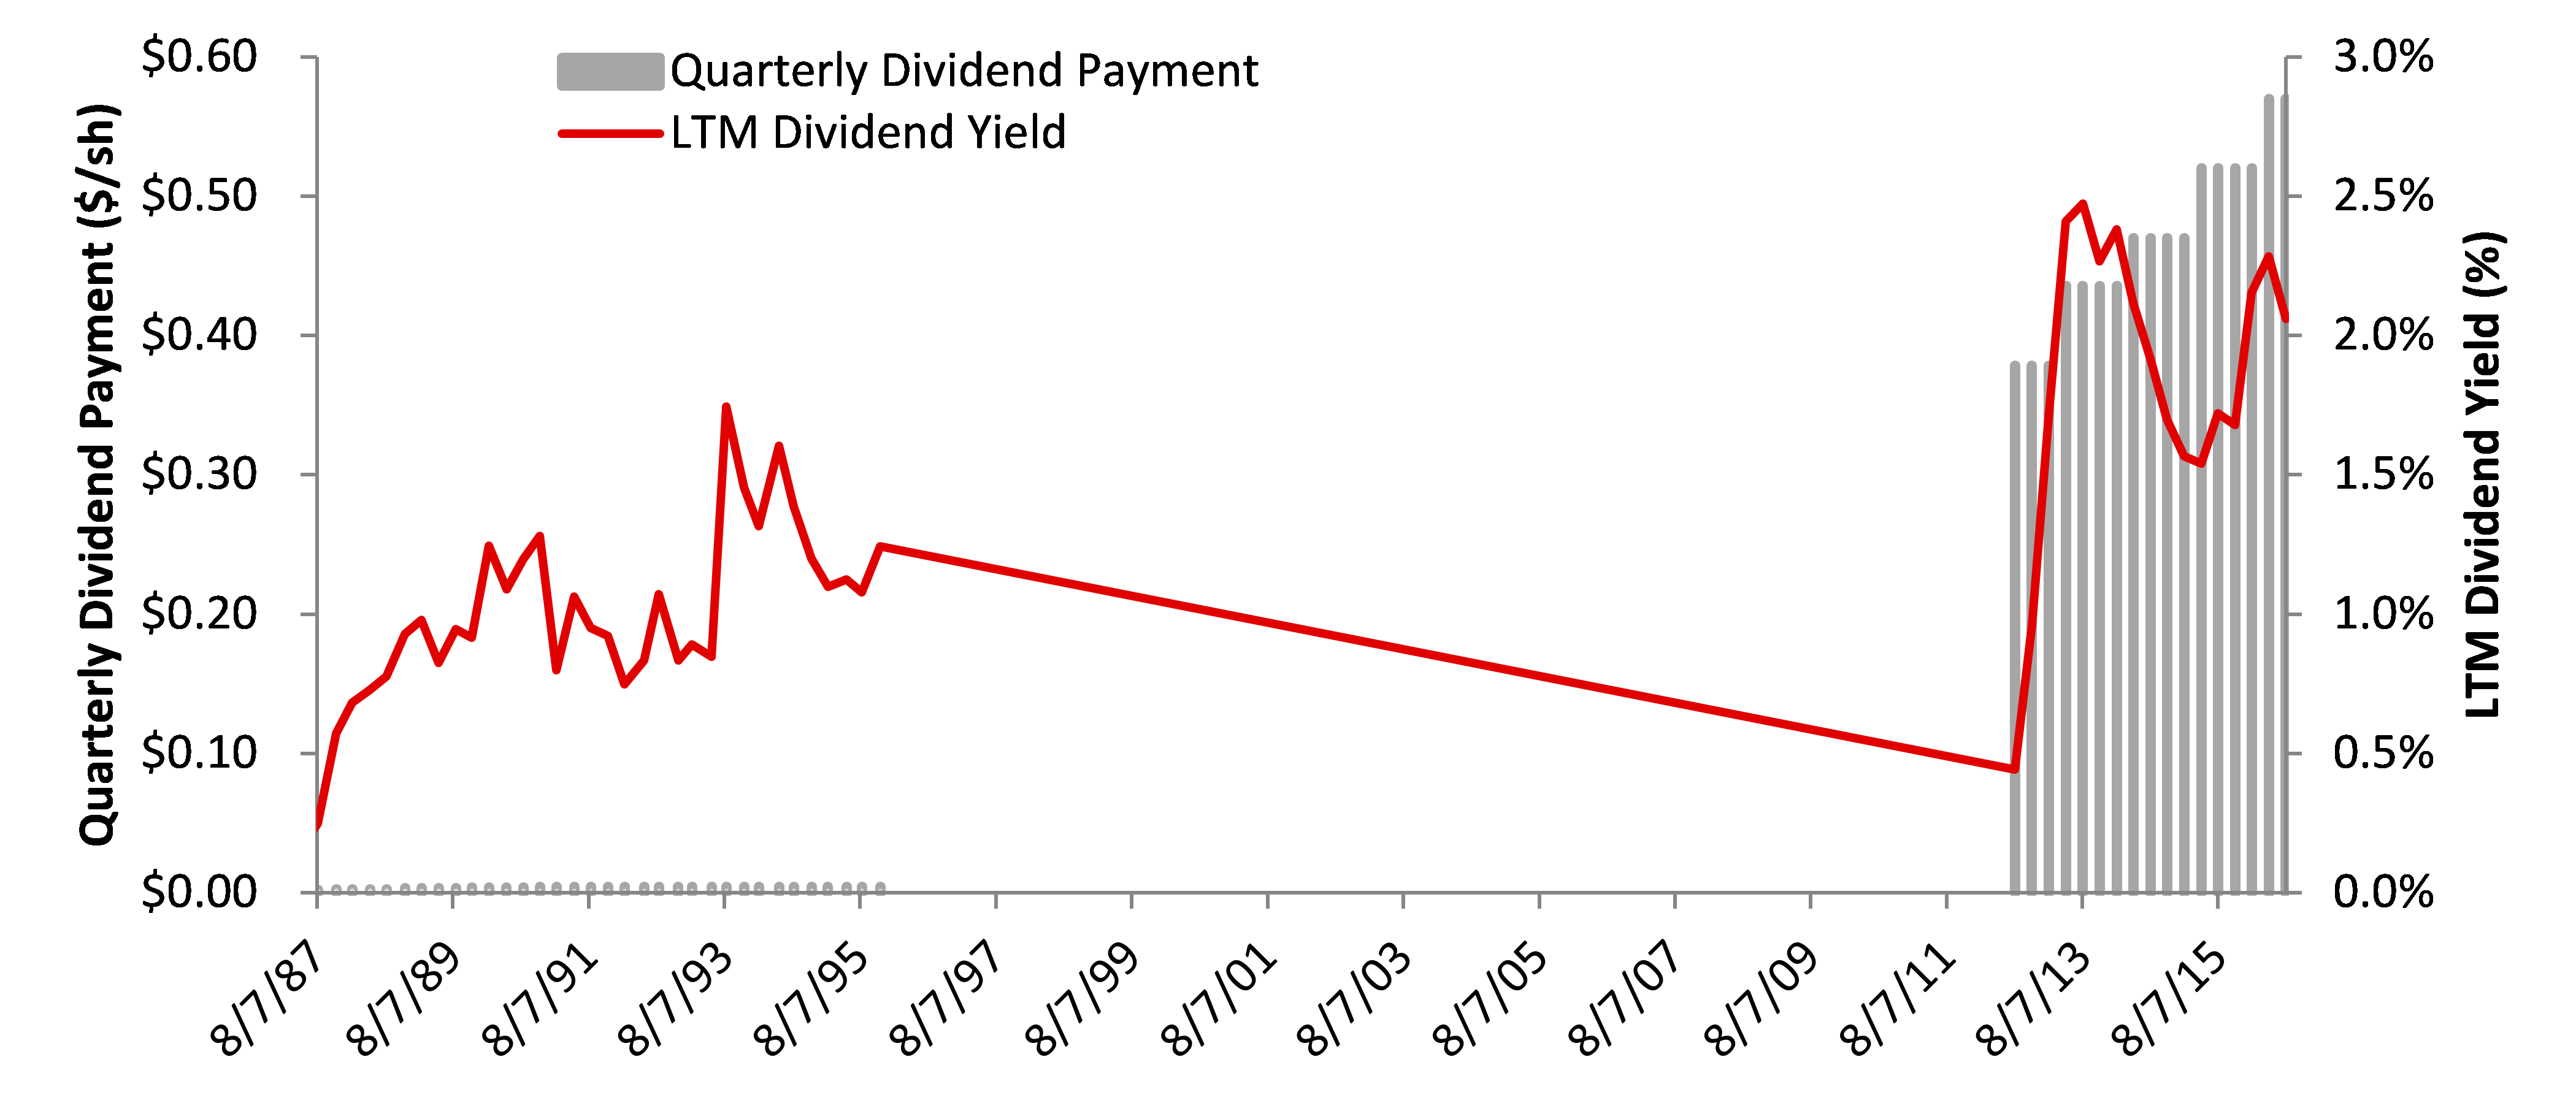 Apple Dividend History Quarterly